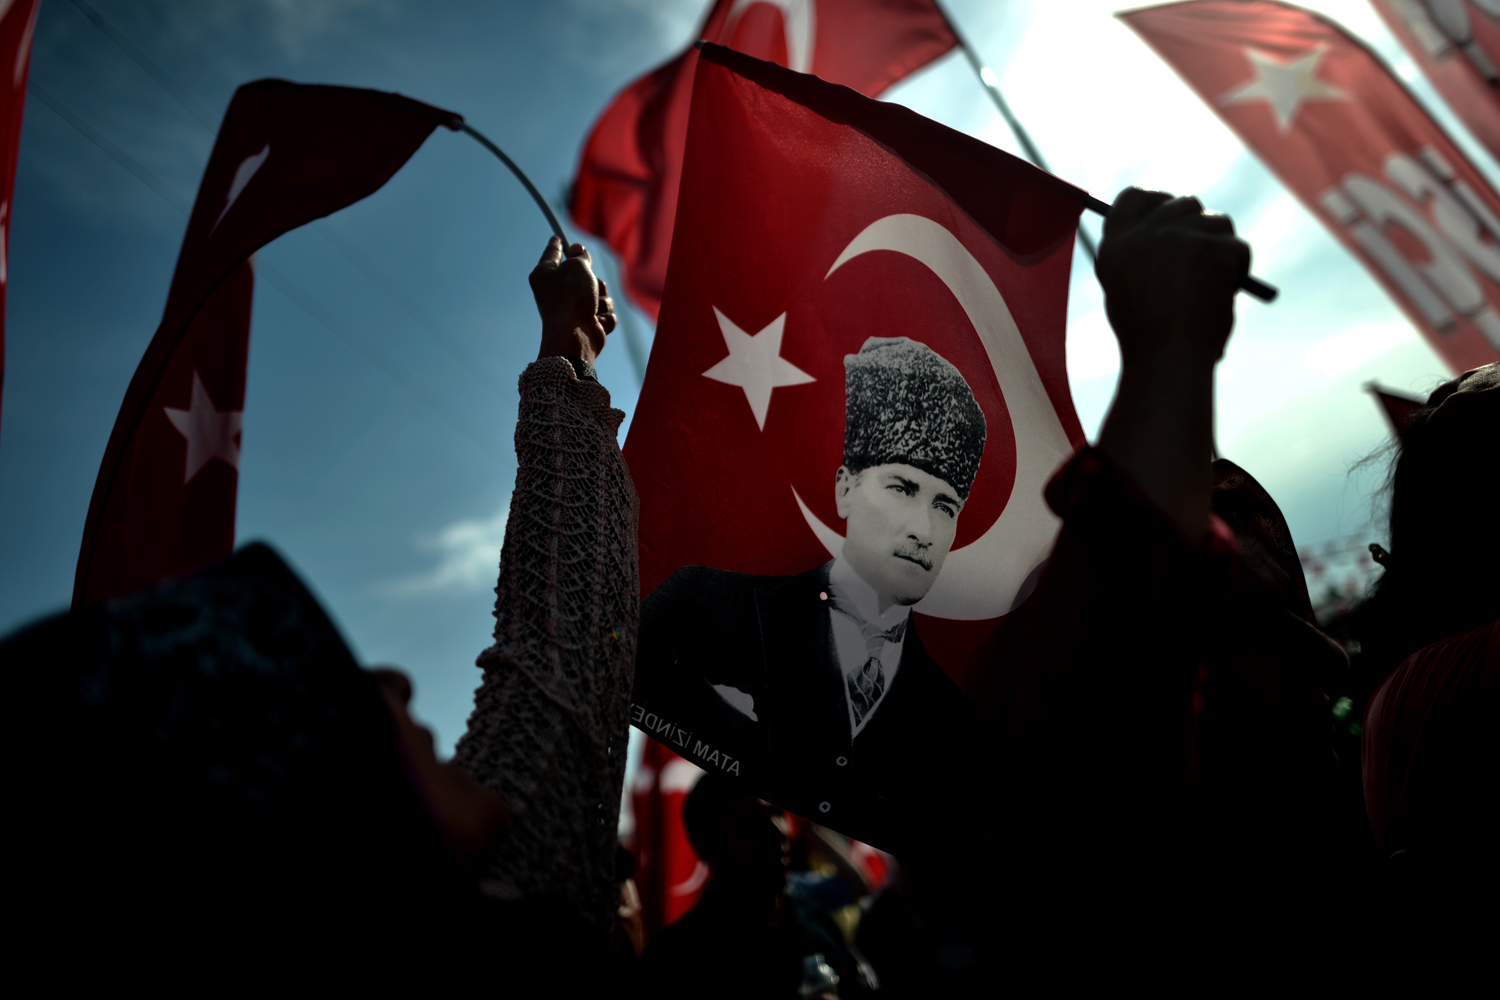 June 6, 2013. Demonstrators wave Turkish flags with portraits of Kemal Ataturk during a protest on Taksim Square in Istanbul.